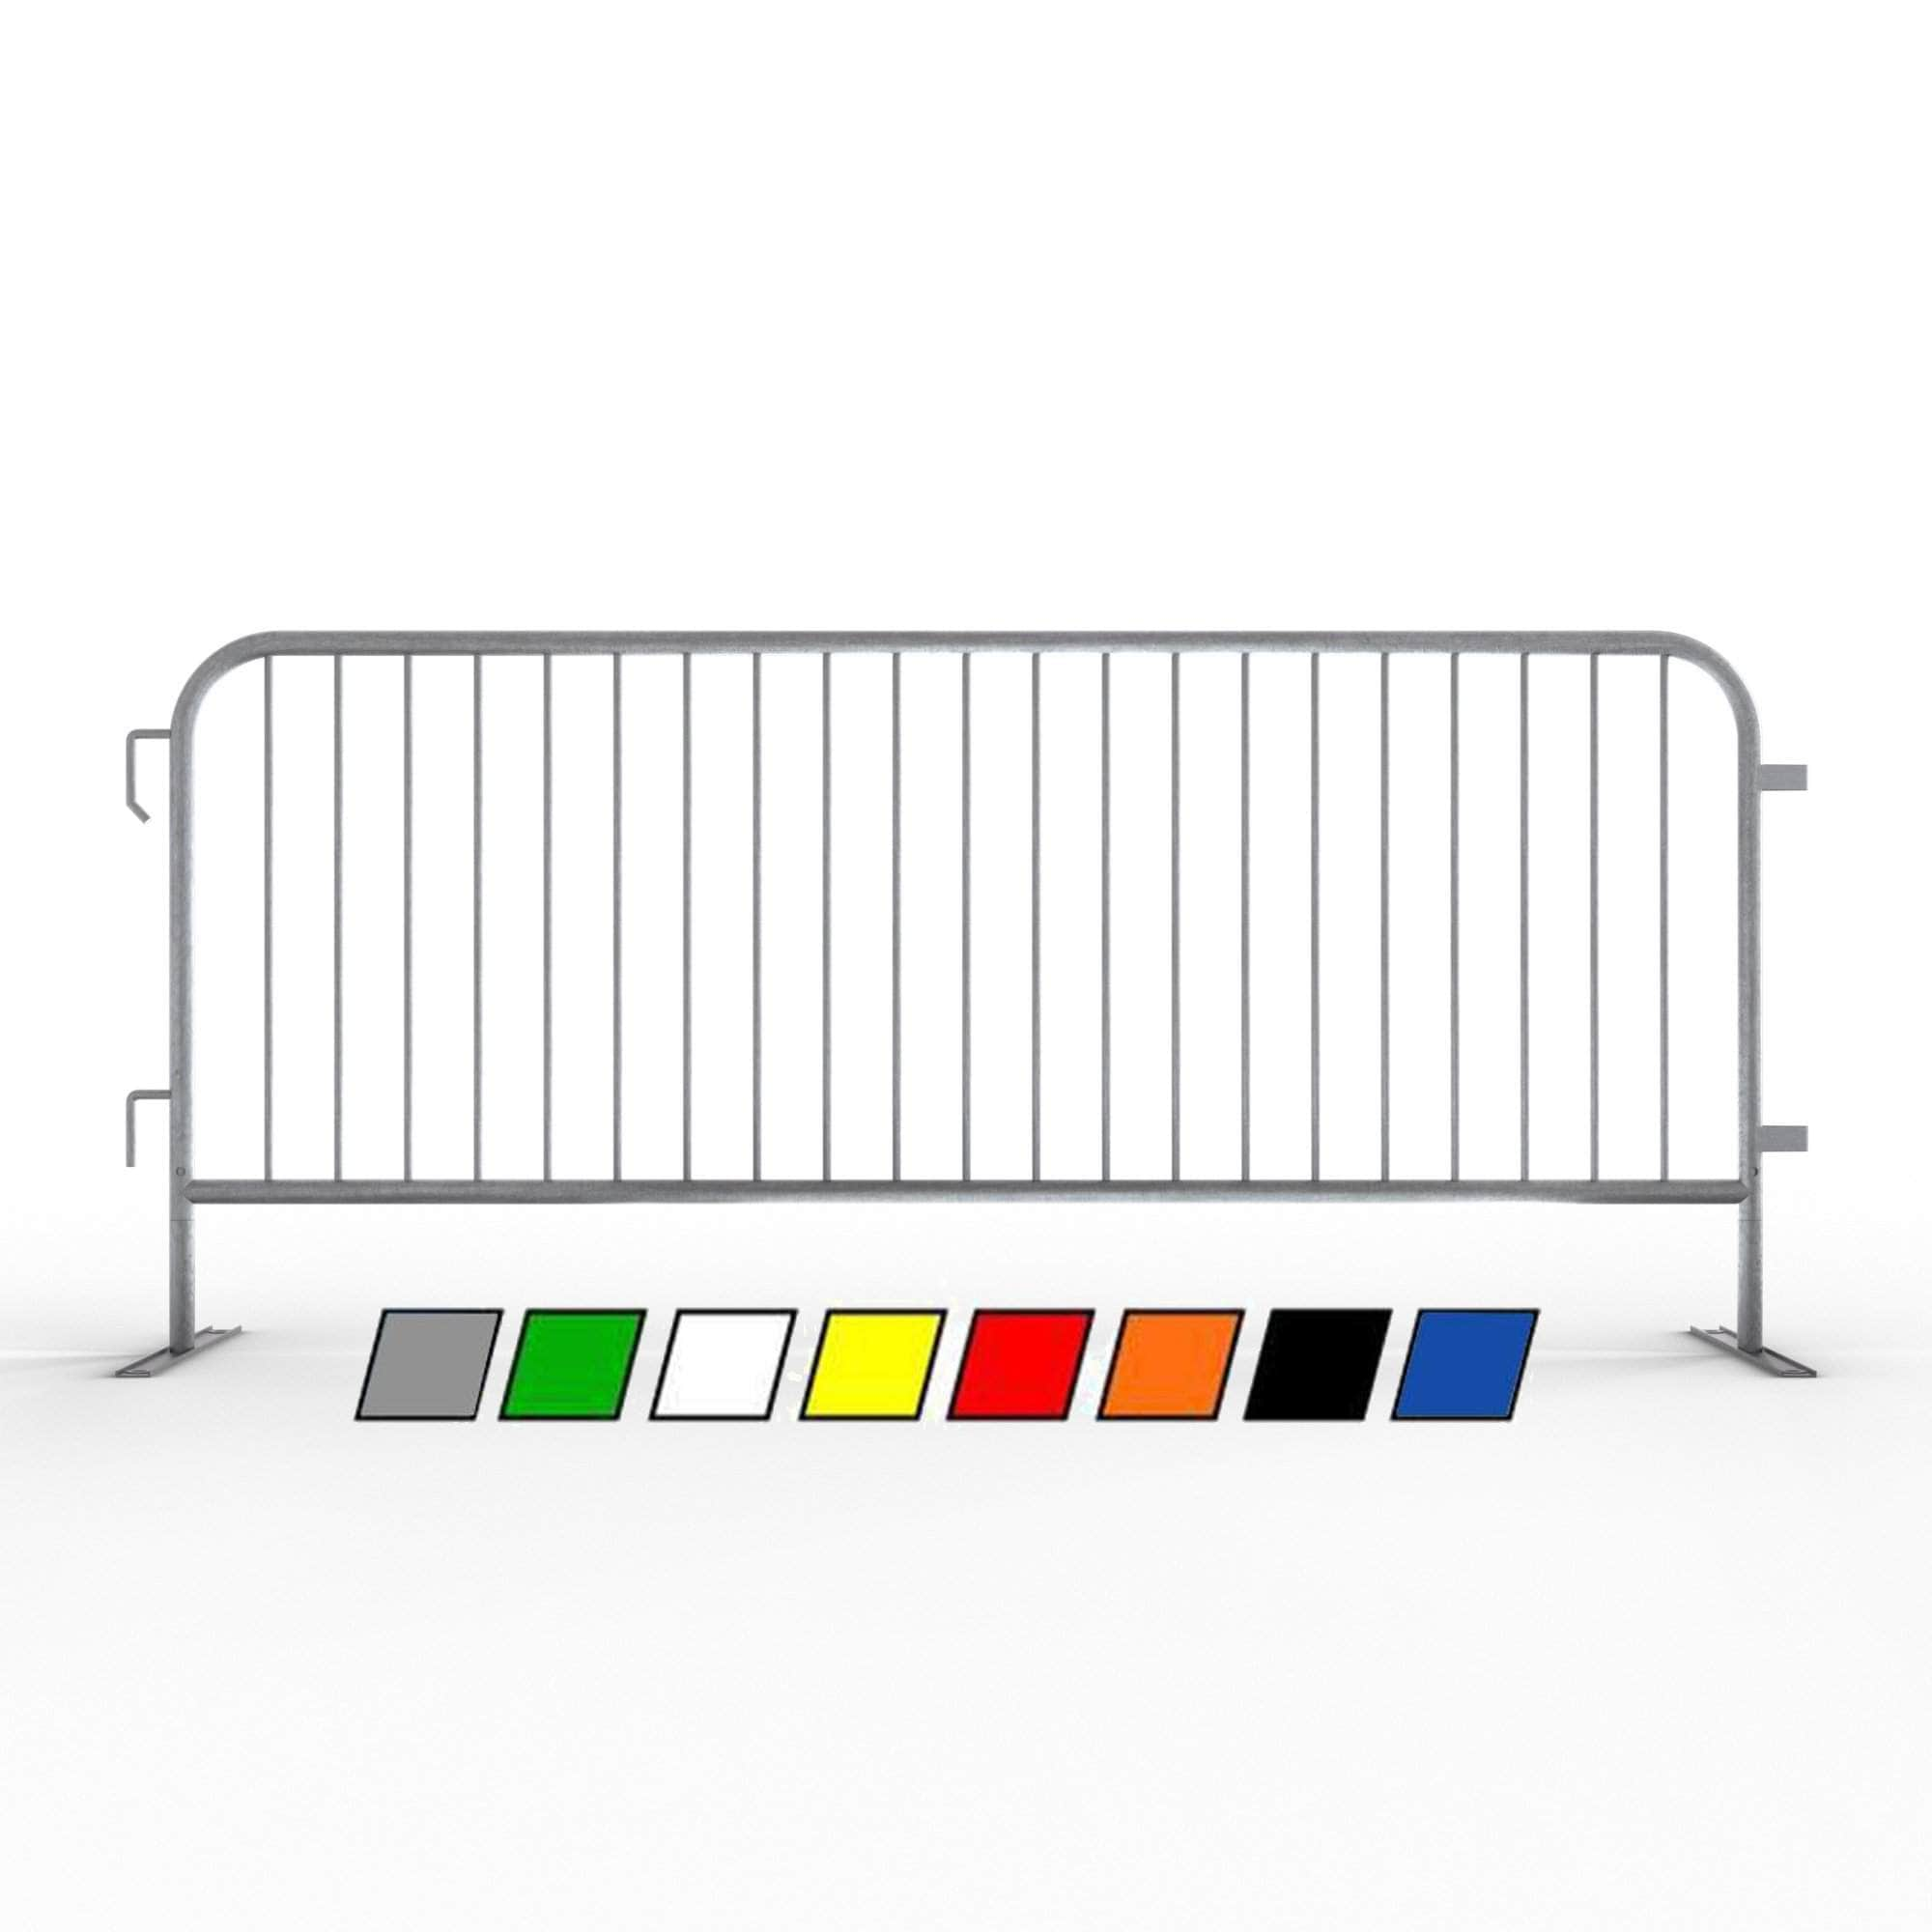 GALVANIZED STEEL ONE-PERSON OPERATION CROWD CONTROL BARRICADES 6.8/'